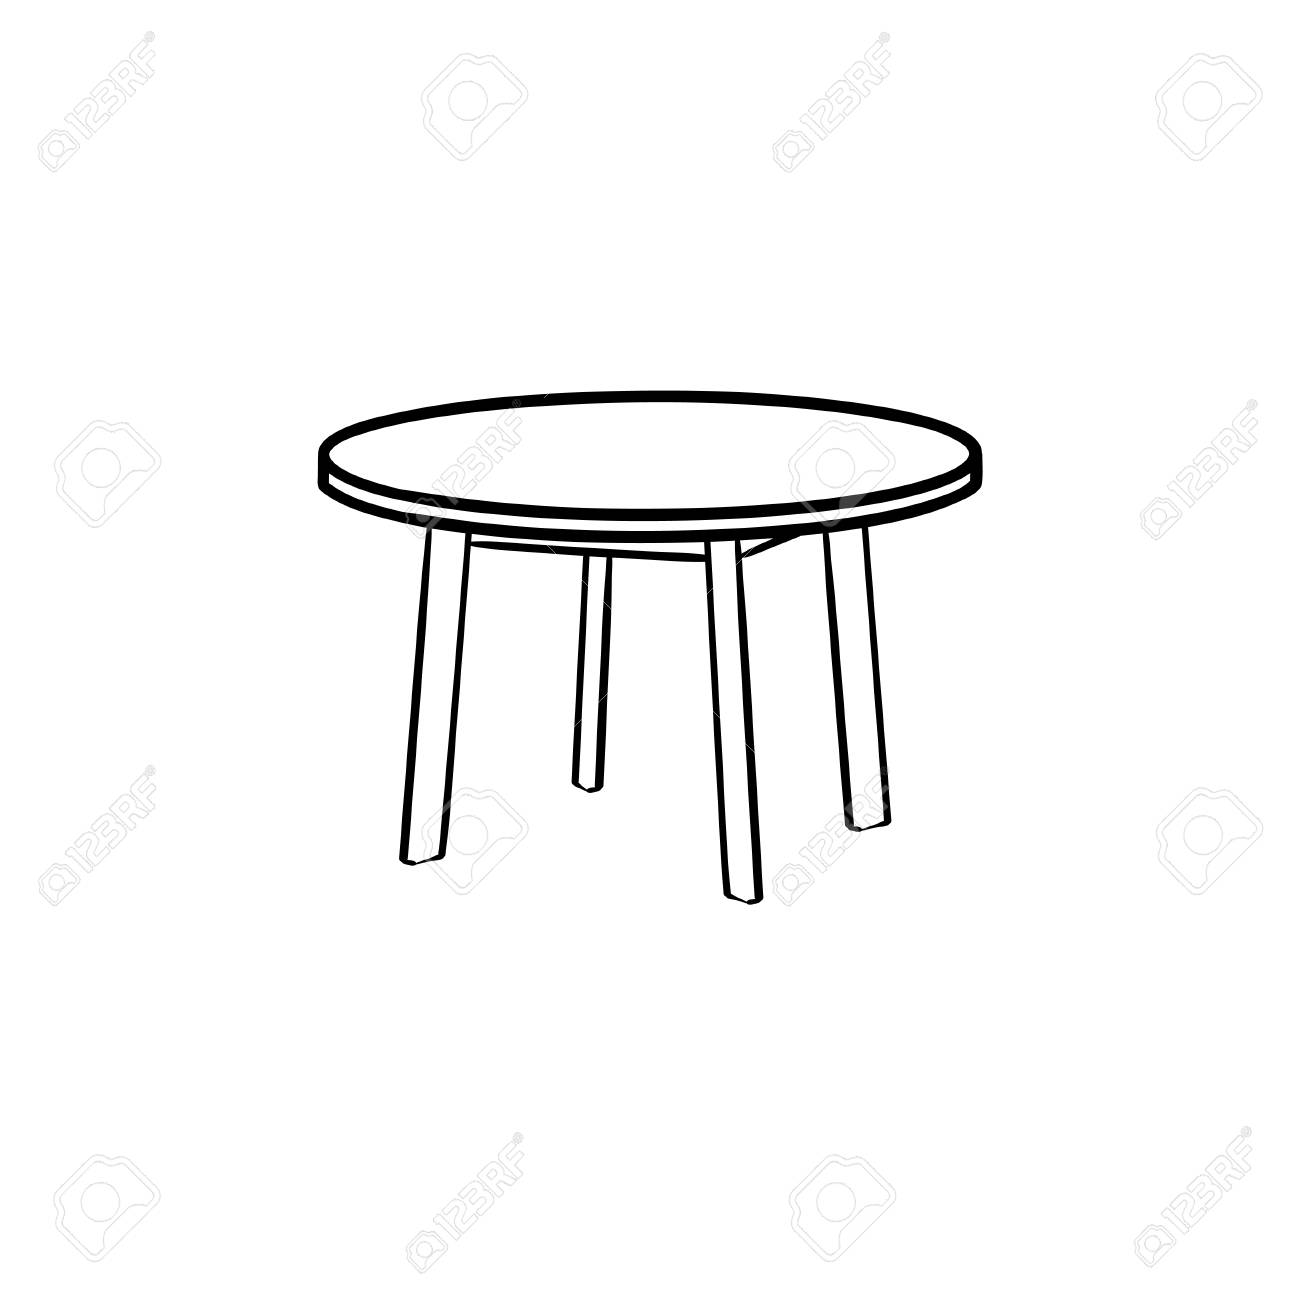 Mobile Coffee Table.Round Table Hand Drawn Outline Doodle Icon Coffee Table Vector